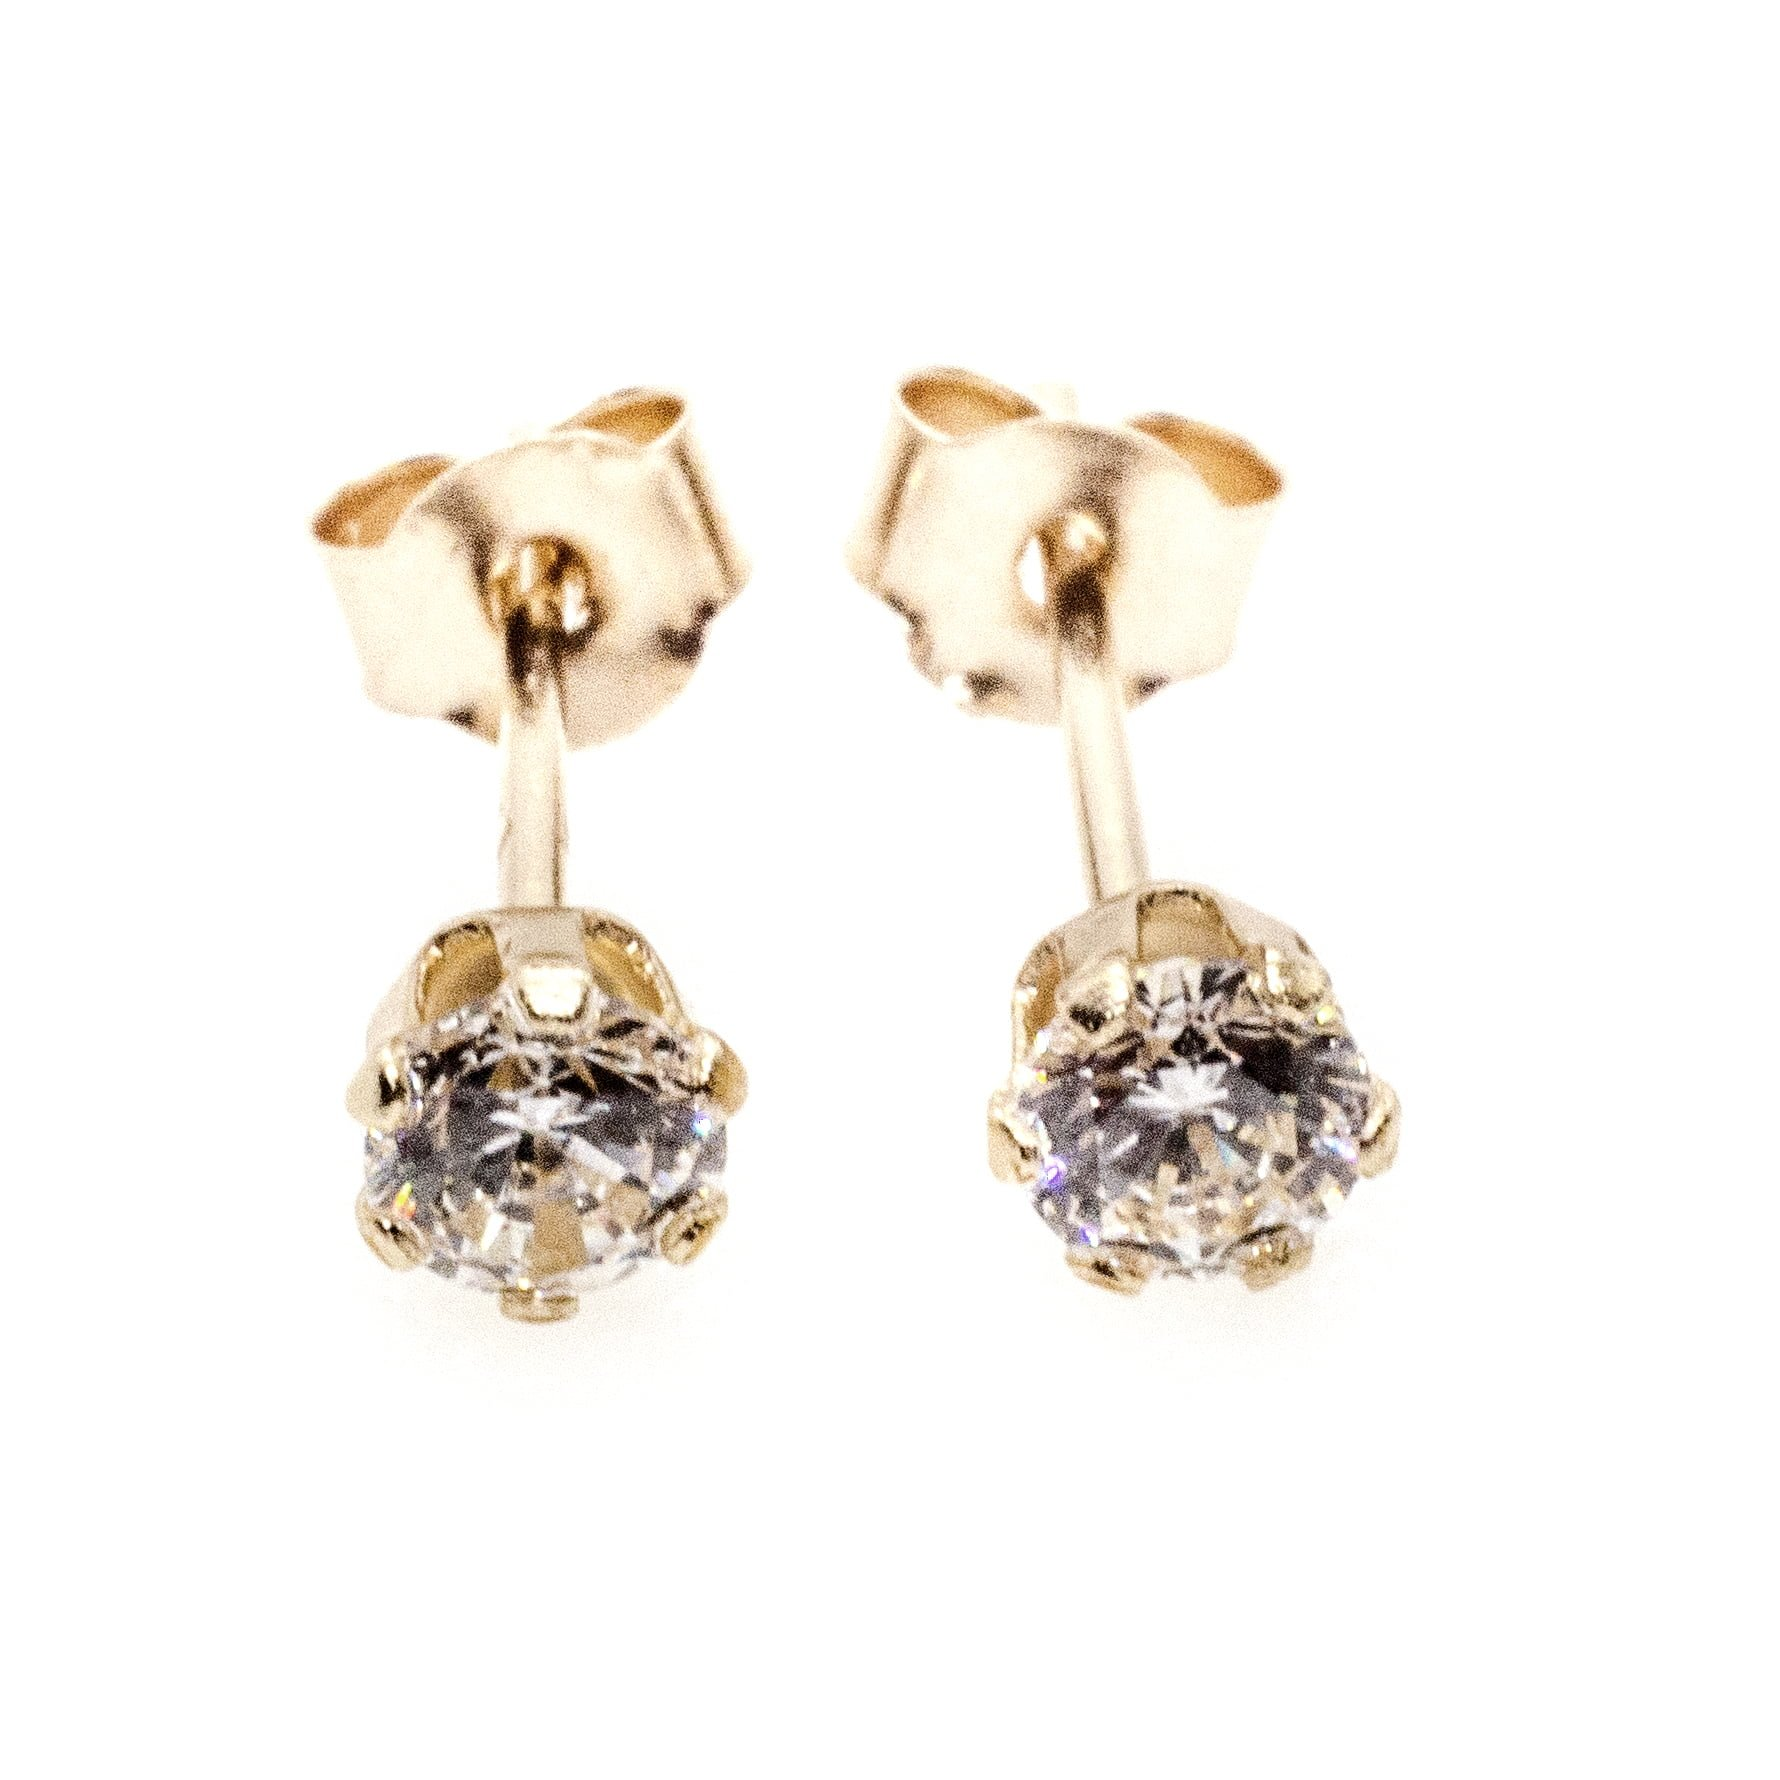 4mm CZ stud earrings 9ct yellow gold